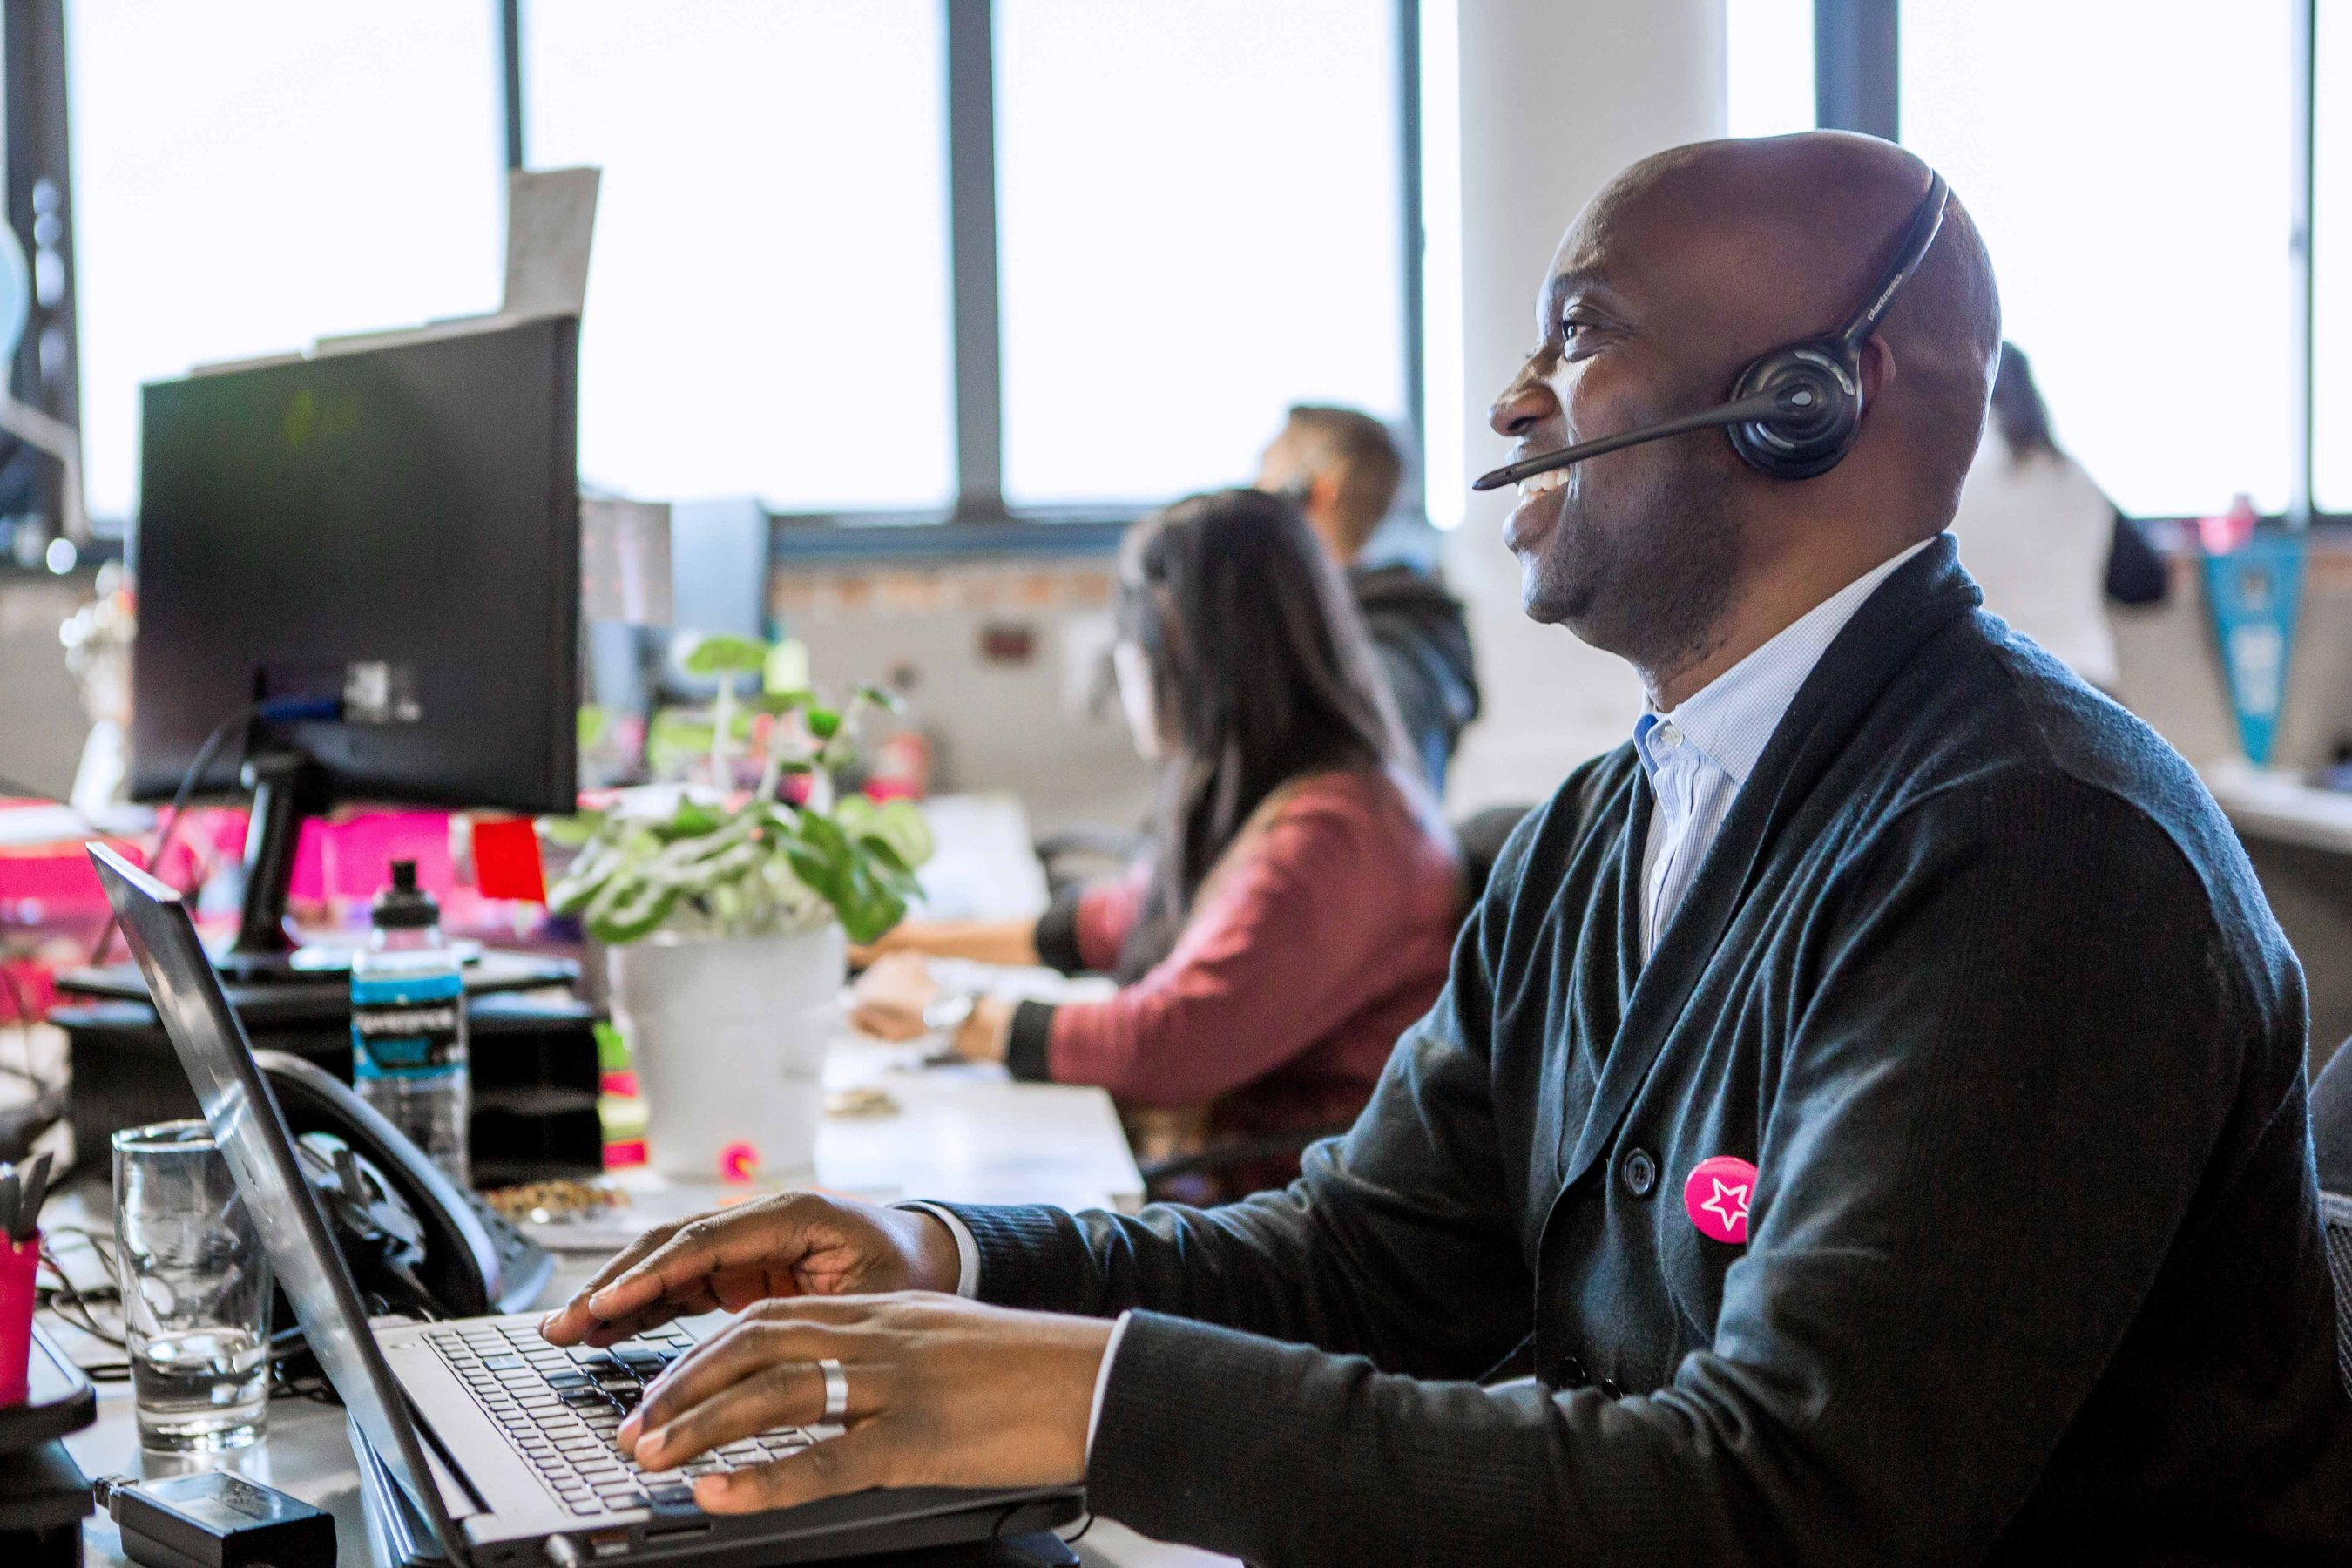 An employee in casual attire works on a laptop at their desk with pink headphones on